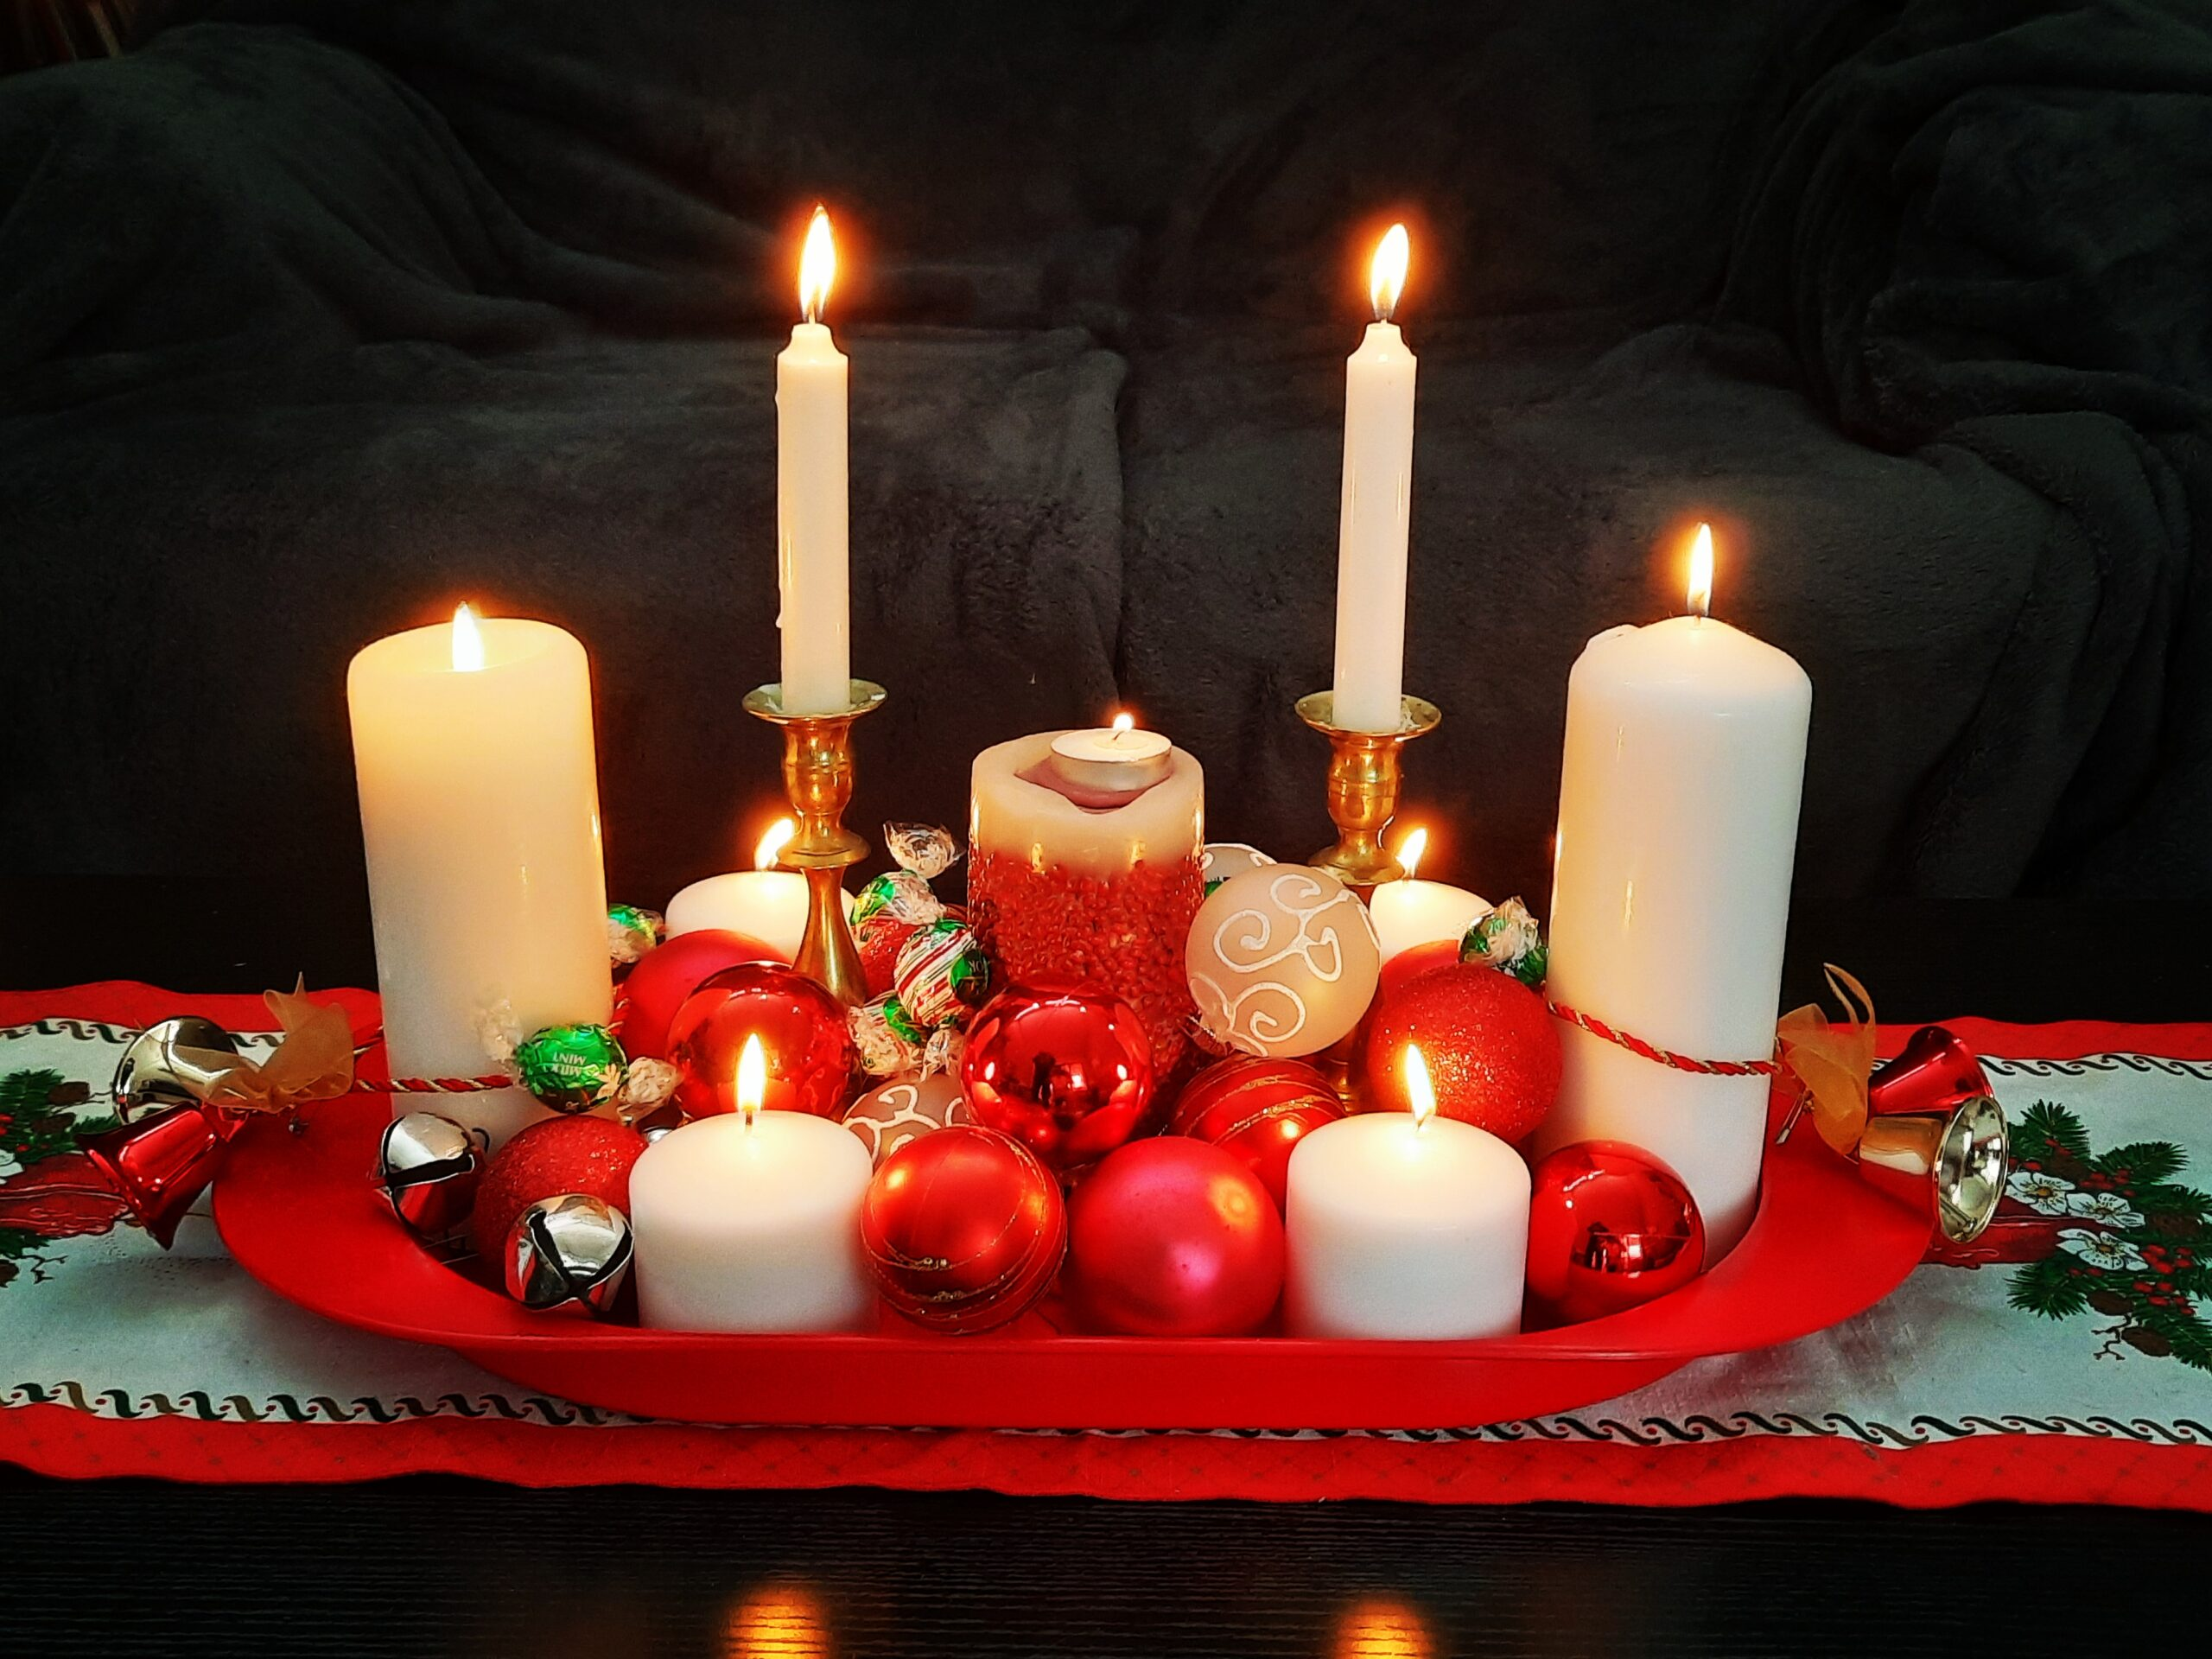 Planning Ahead and the 12 Weeks of Christmas